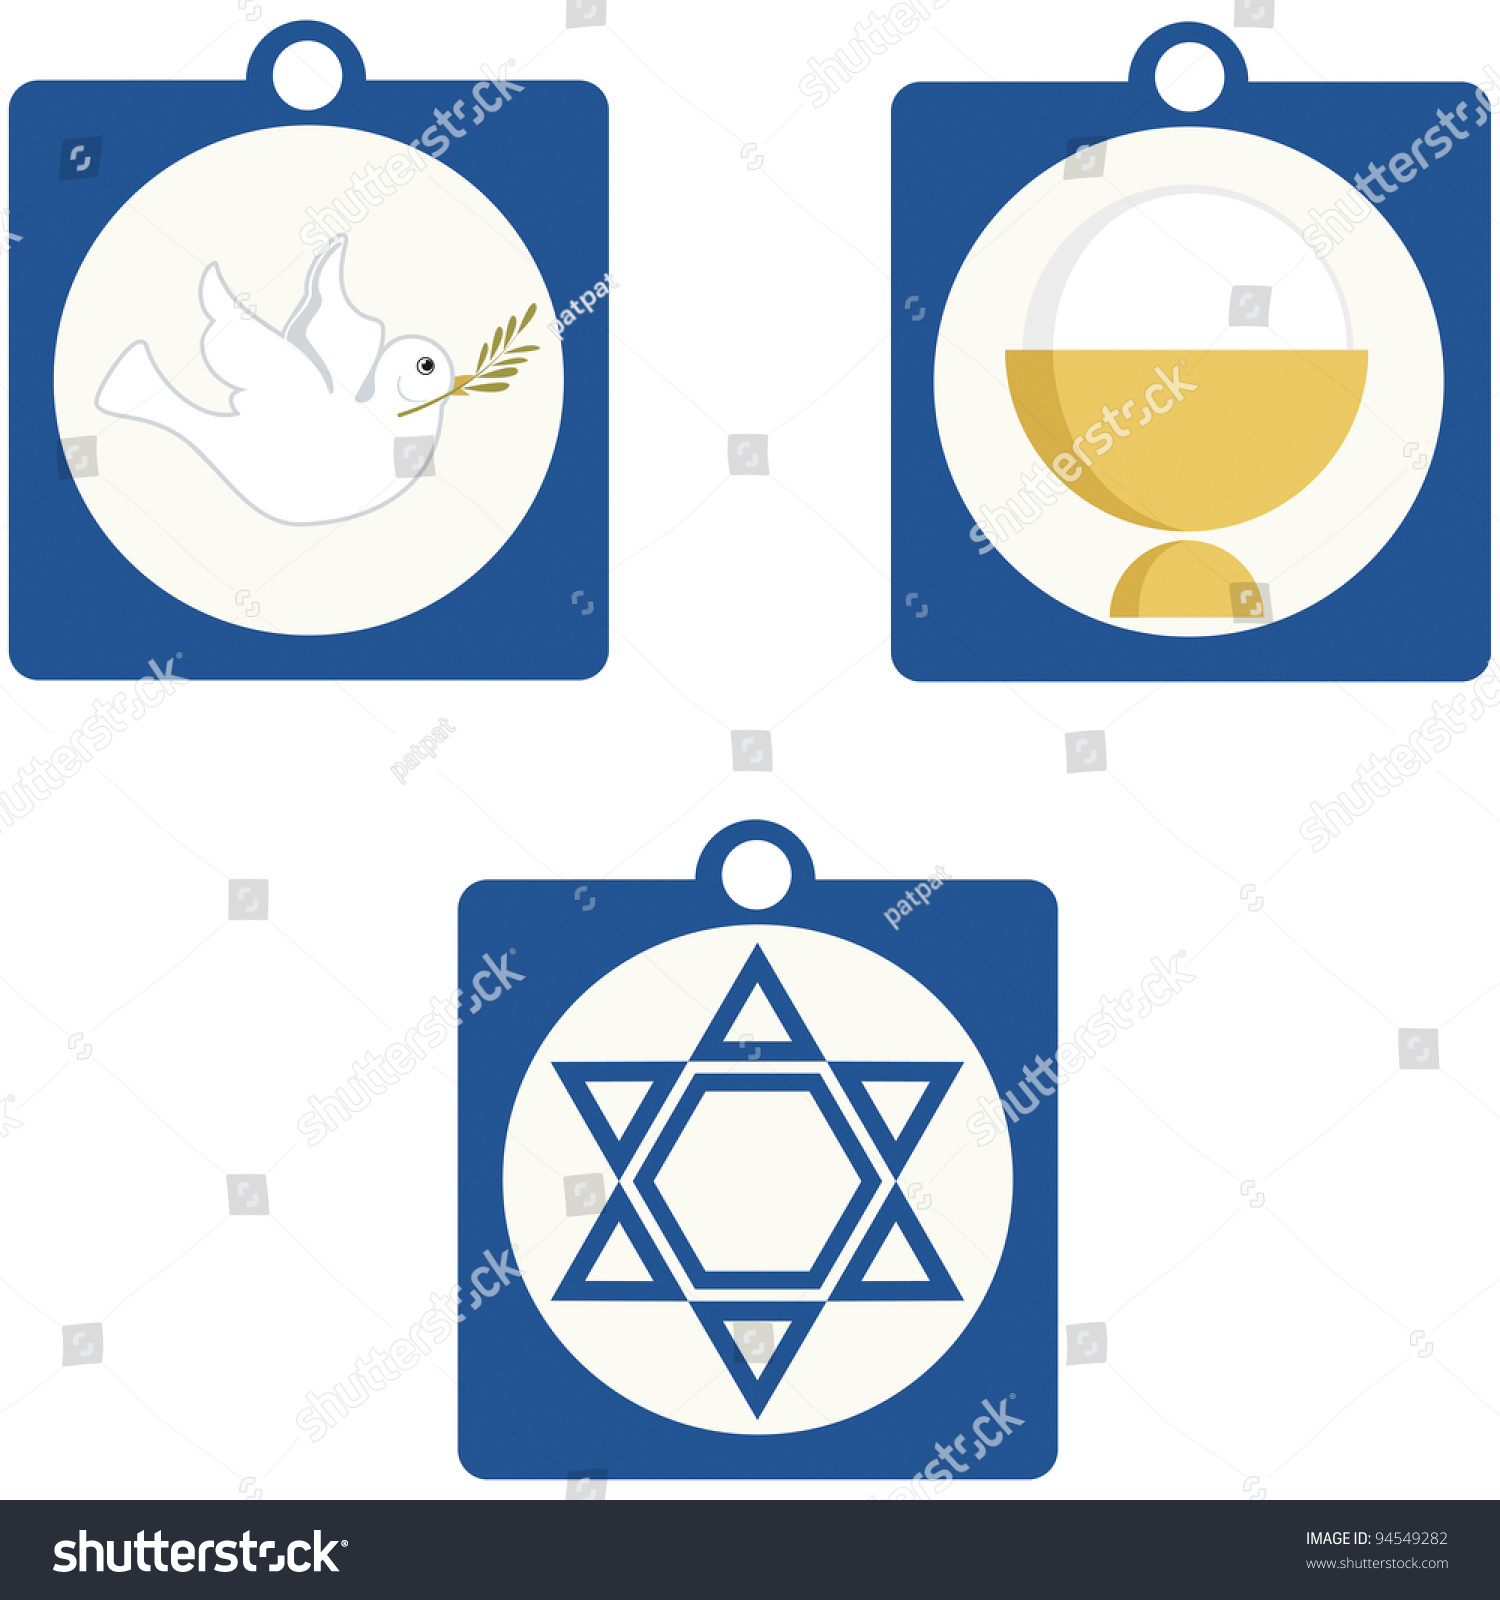 Jewish sacred symbols gallery symbol and sign ideas jewish sacred symbols gallery symbol and sign ideas christian jewish religious symbols stock vector 94549282 christian biocorpaavc